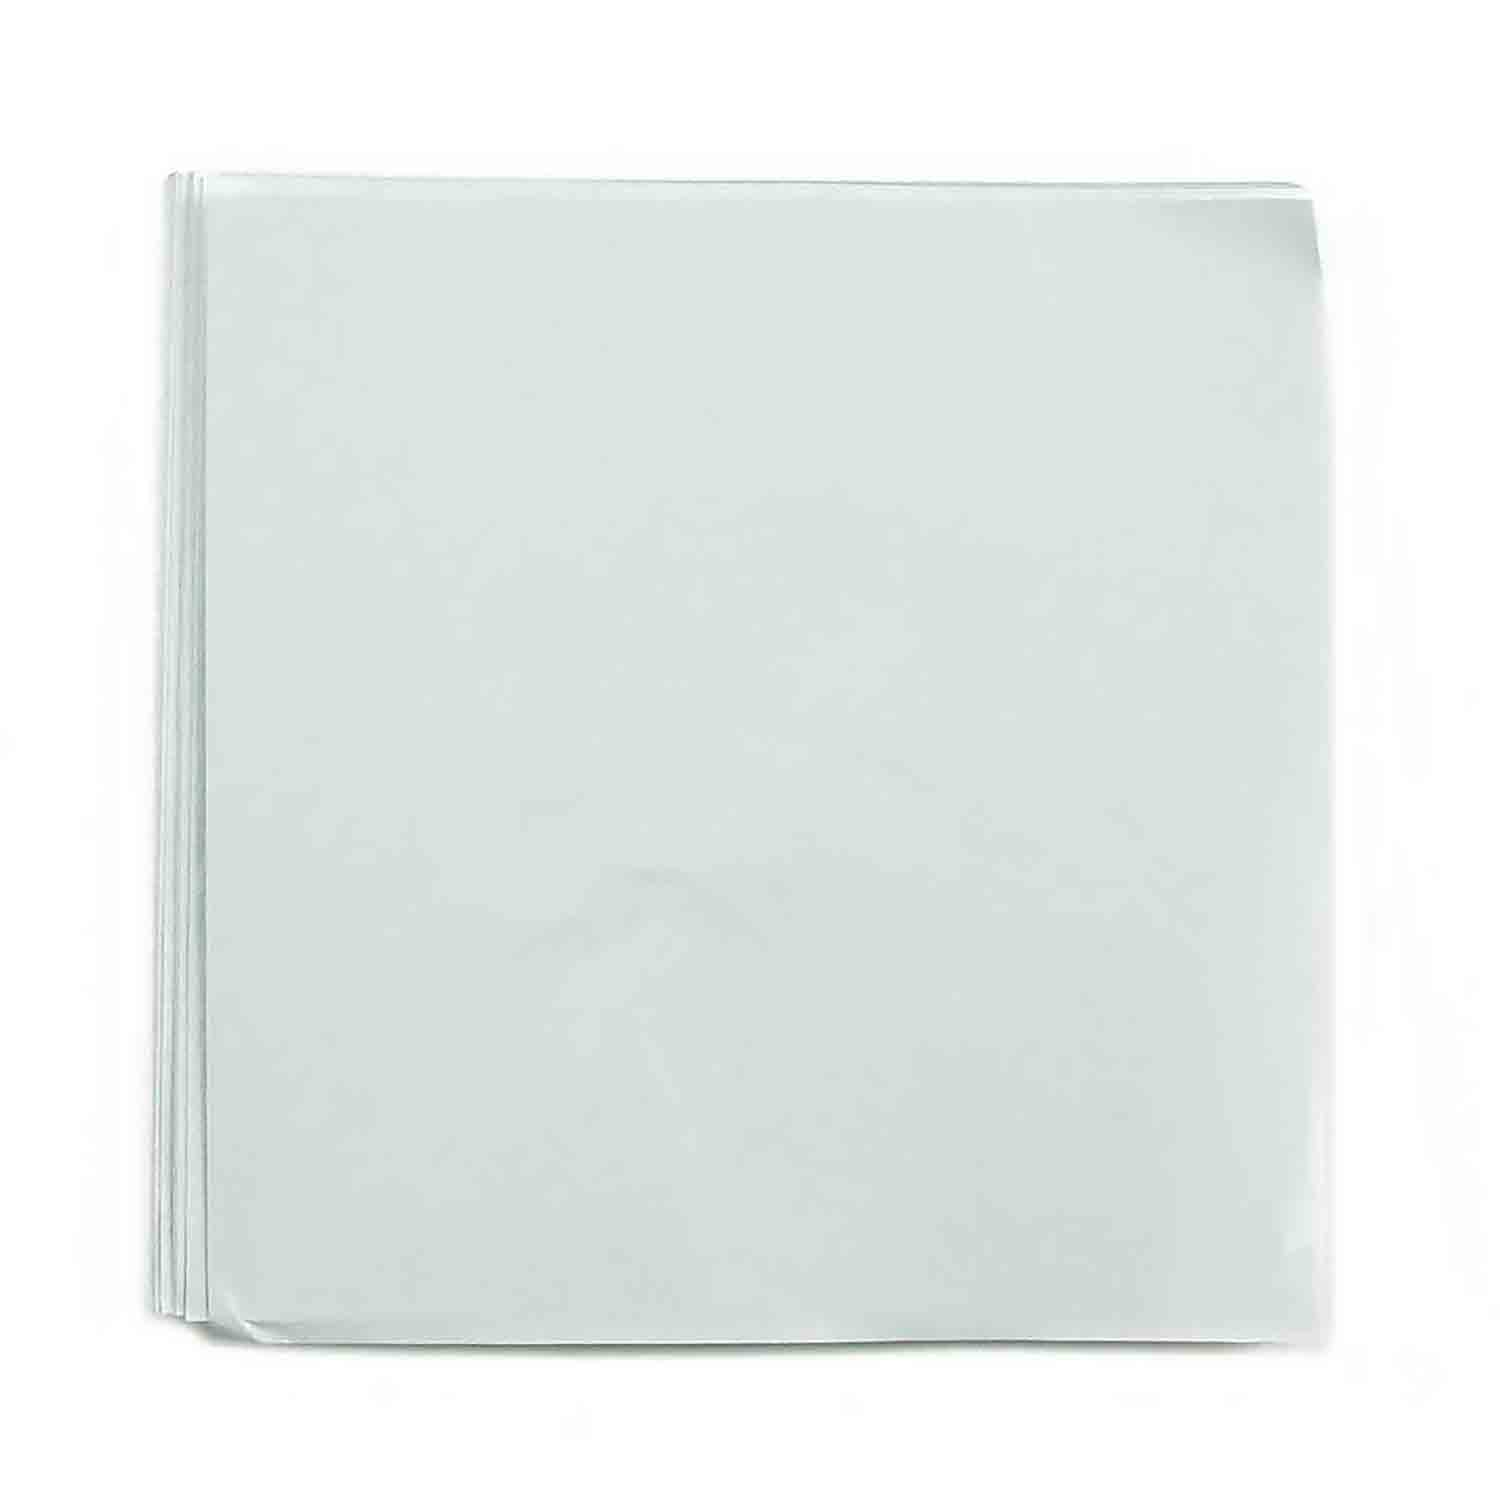 "4 x 4"" Foil Wrapper White"